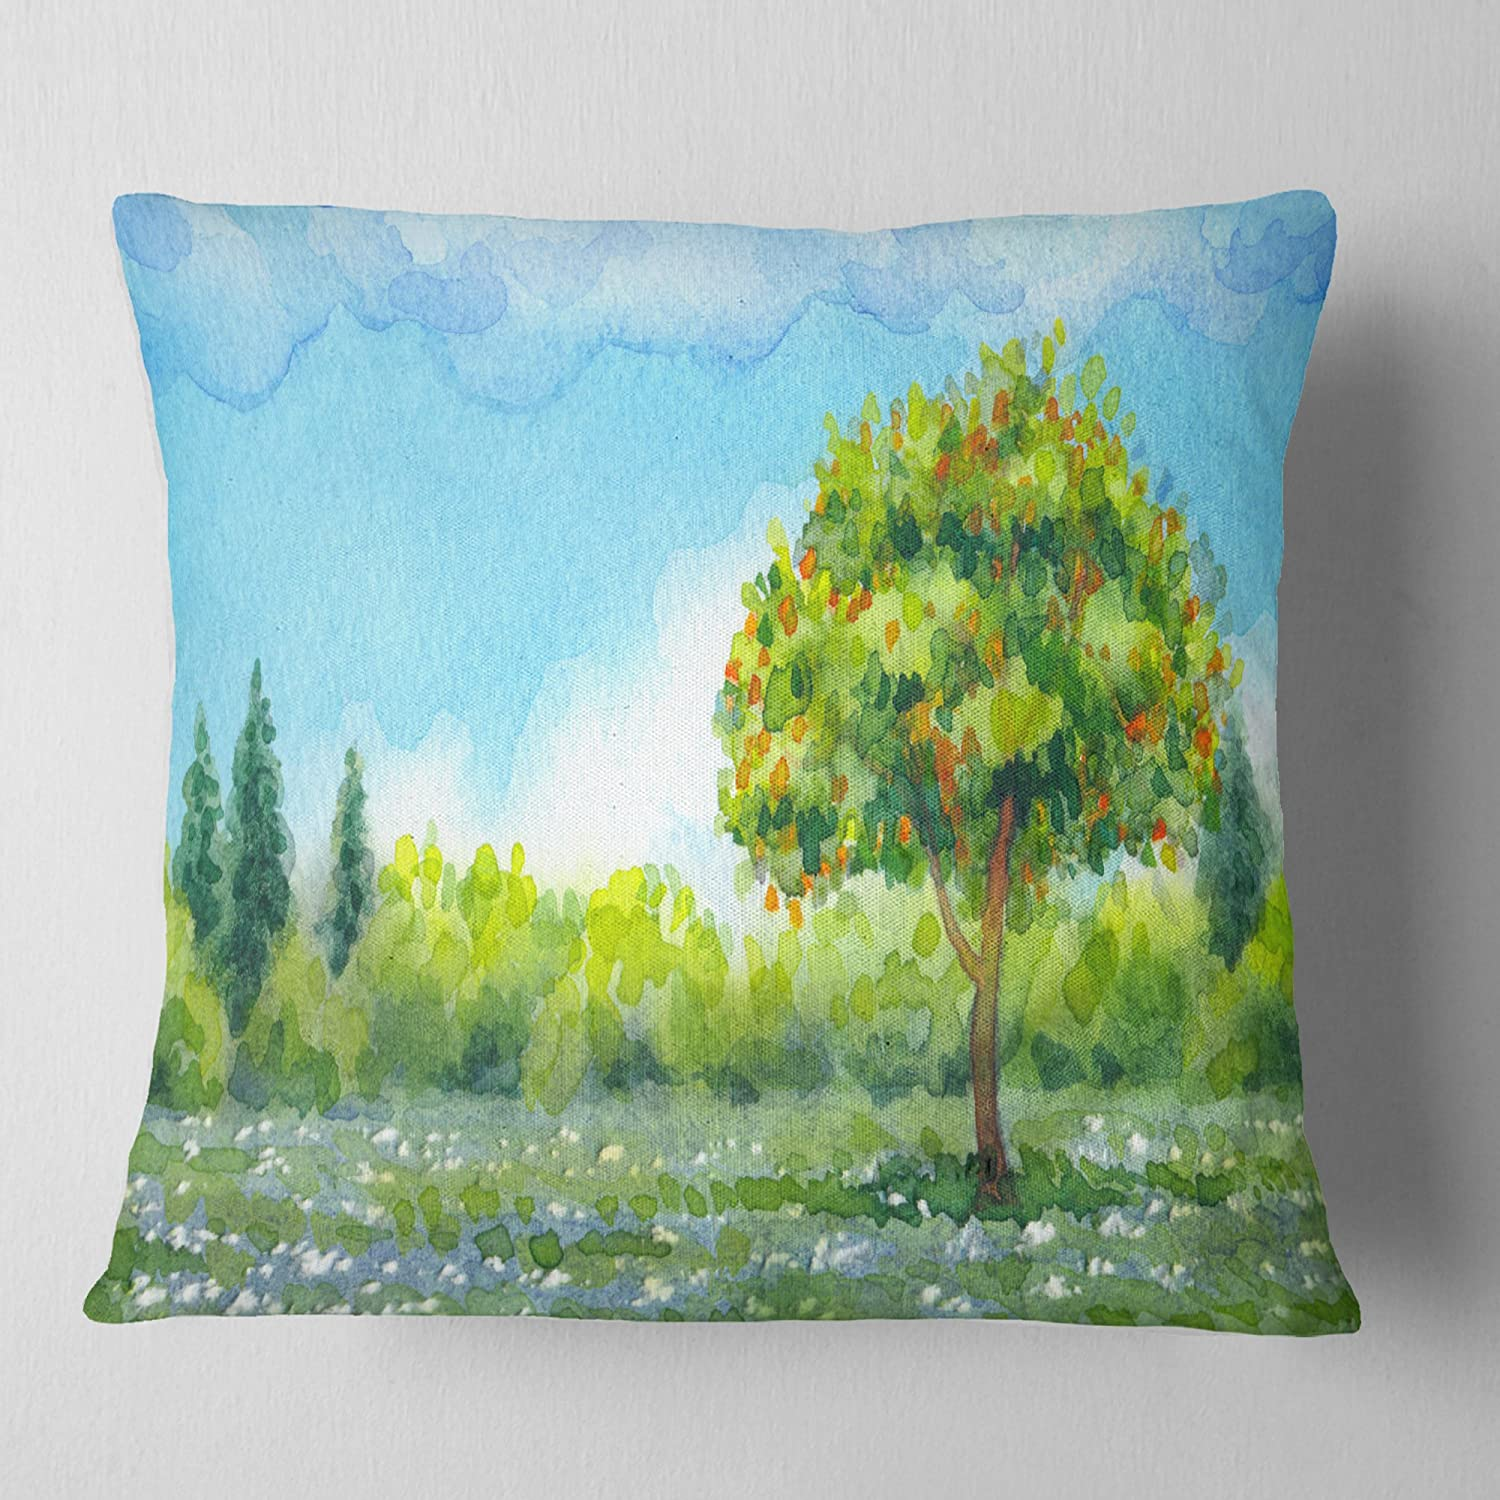 Designart CU7314-26-26 Tree in Spring' Watercolor Painting Landscape Printed Cushion Cover for Living Room, Sofa Throw Pillow, 26' x 26'